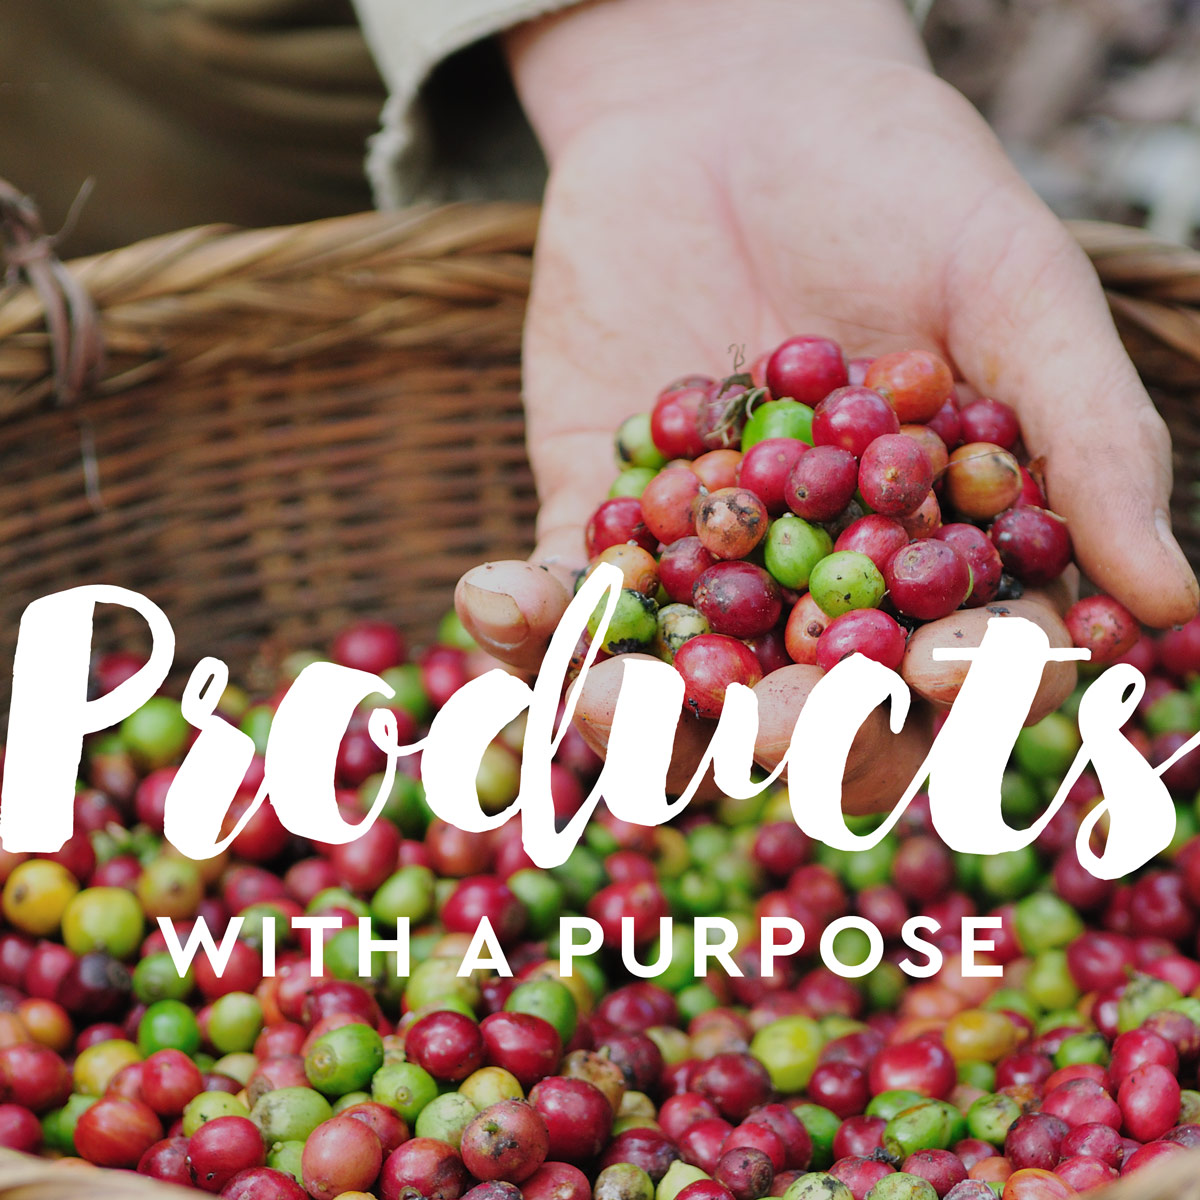 Sustainability Products with a Purpose